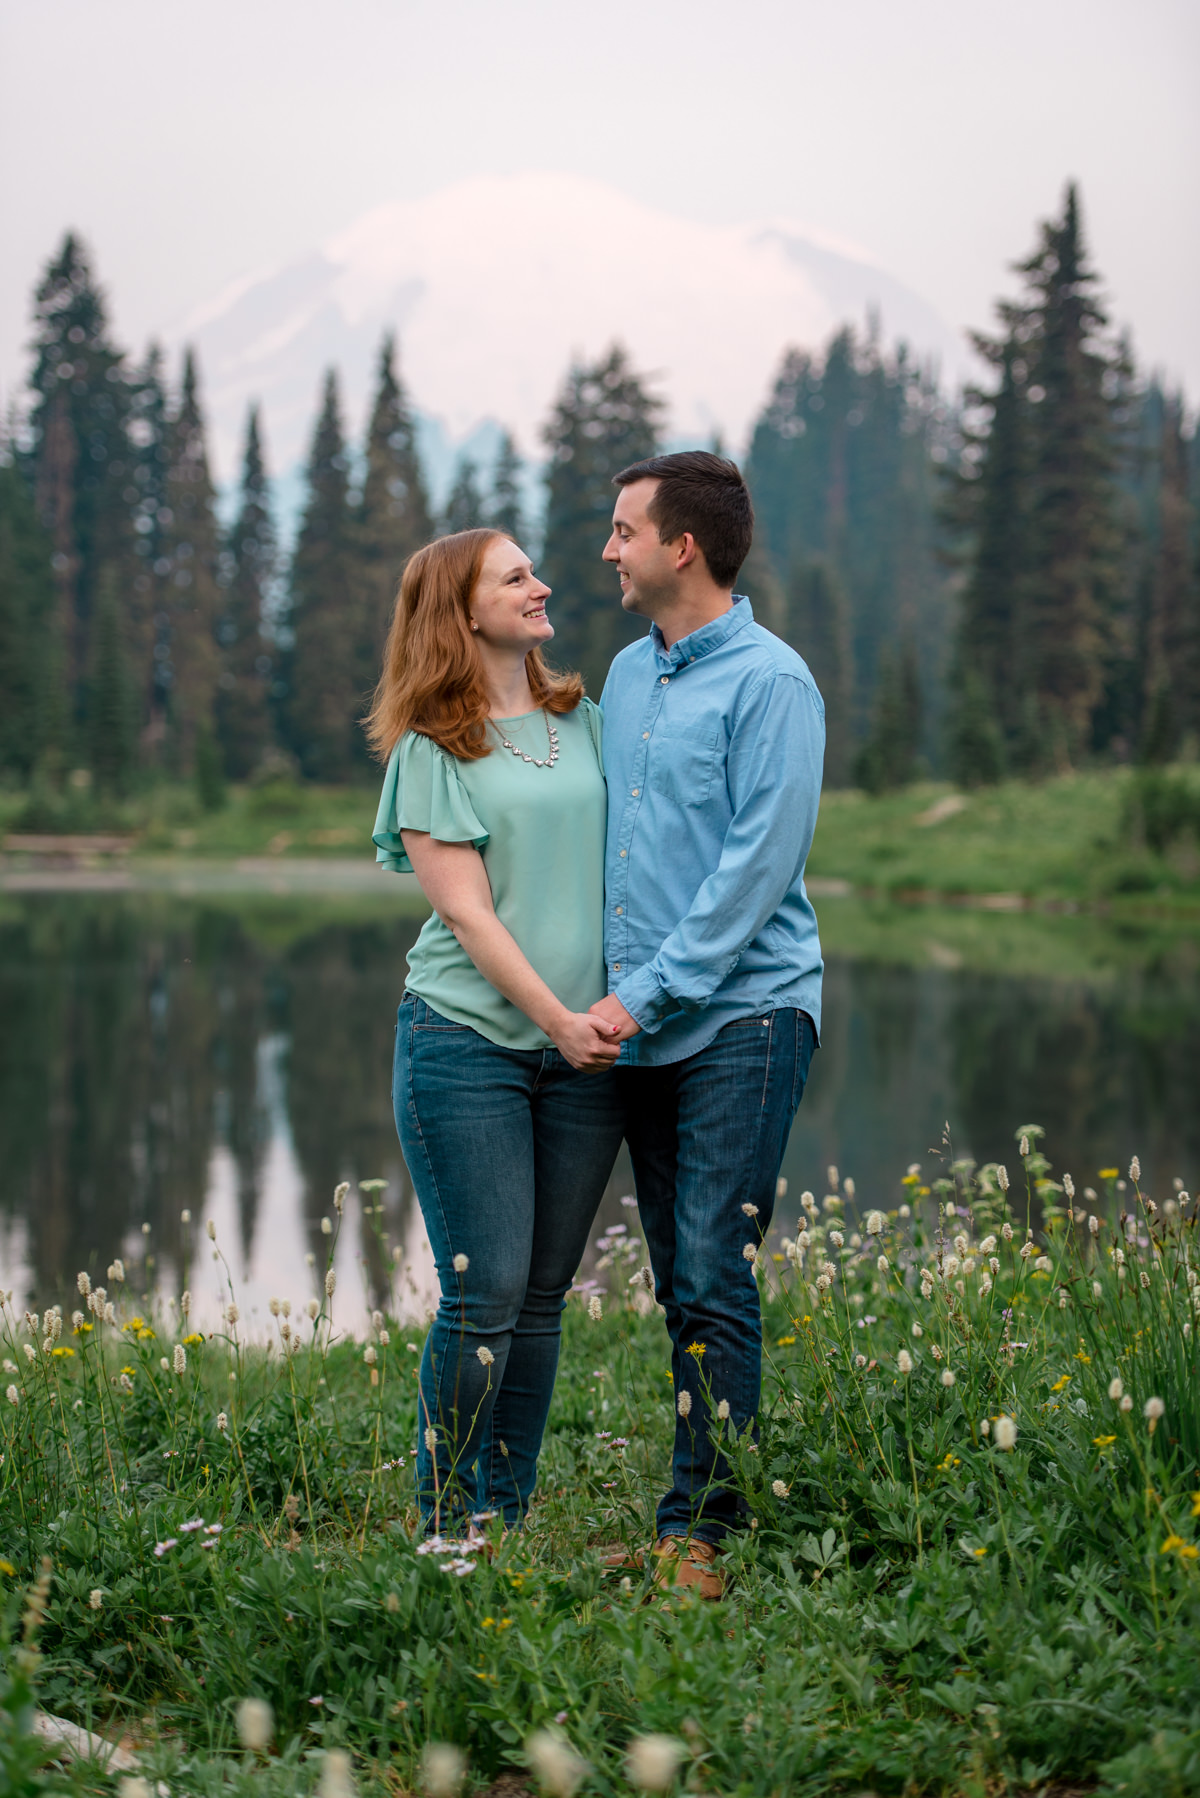 Andrew Tat - Documentary Wedding Photography - Tipsoo Lake - Mount Rainier National Park, Washington - Erin & Robert - 17.JPG